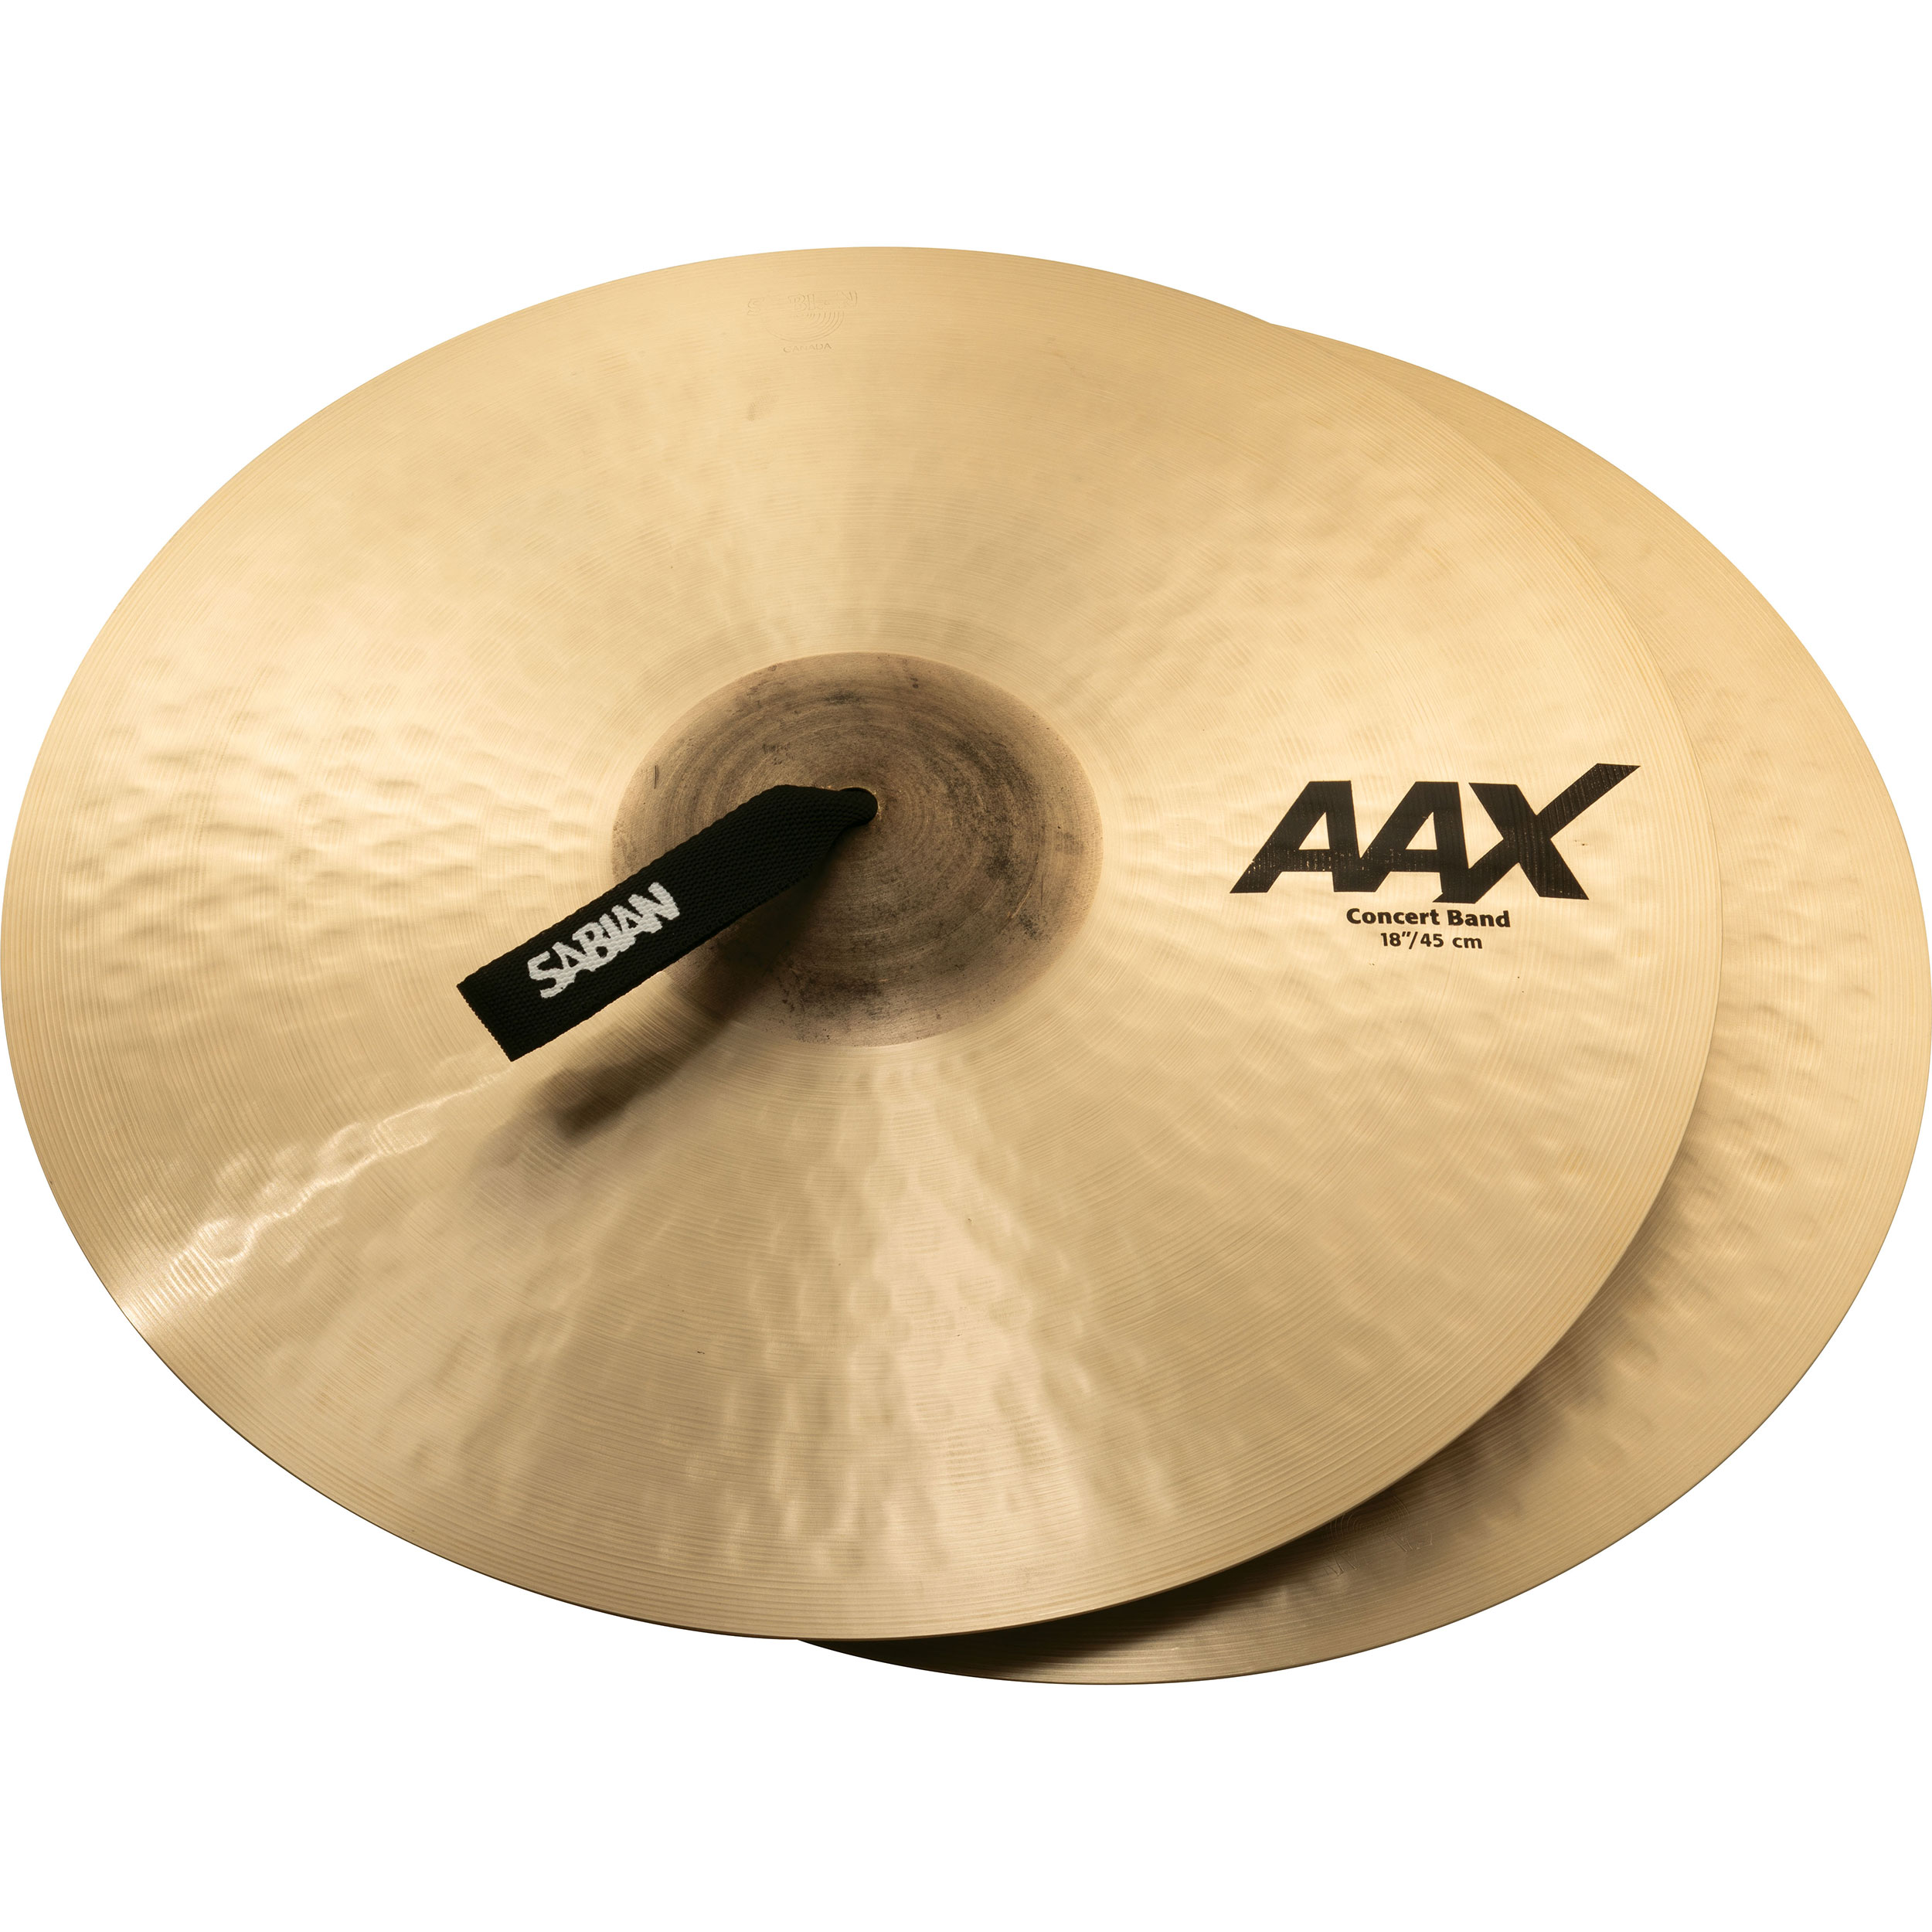 "Sabian 18"" AAX Concert Band Crash Cymbal Pair"